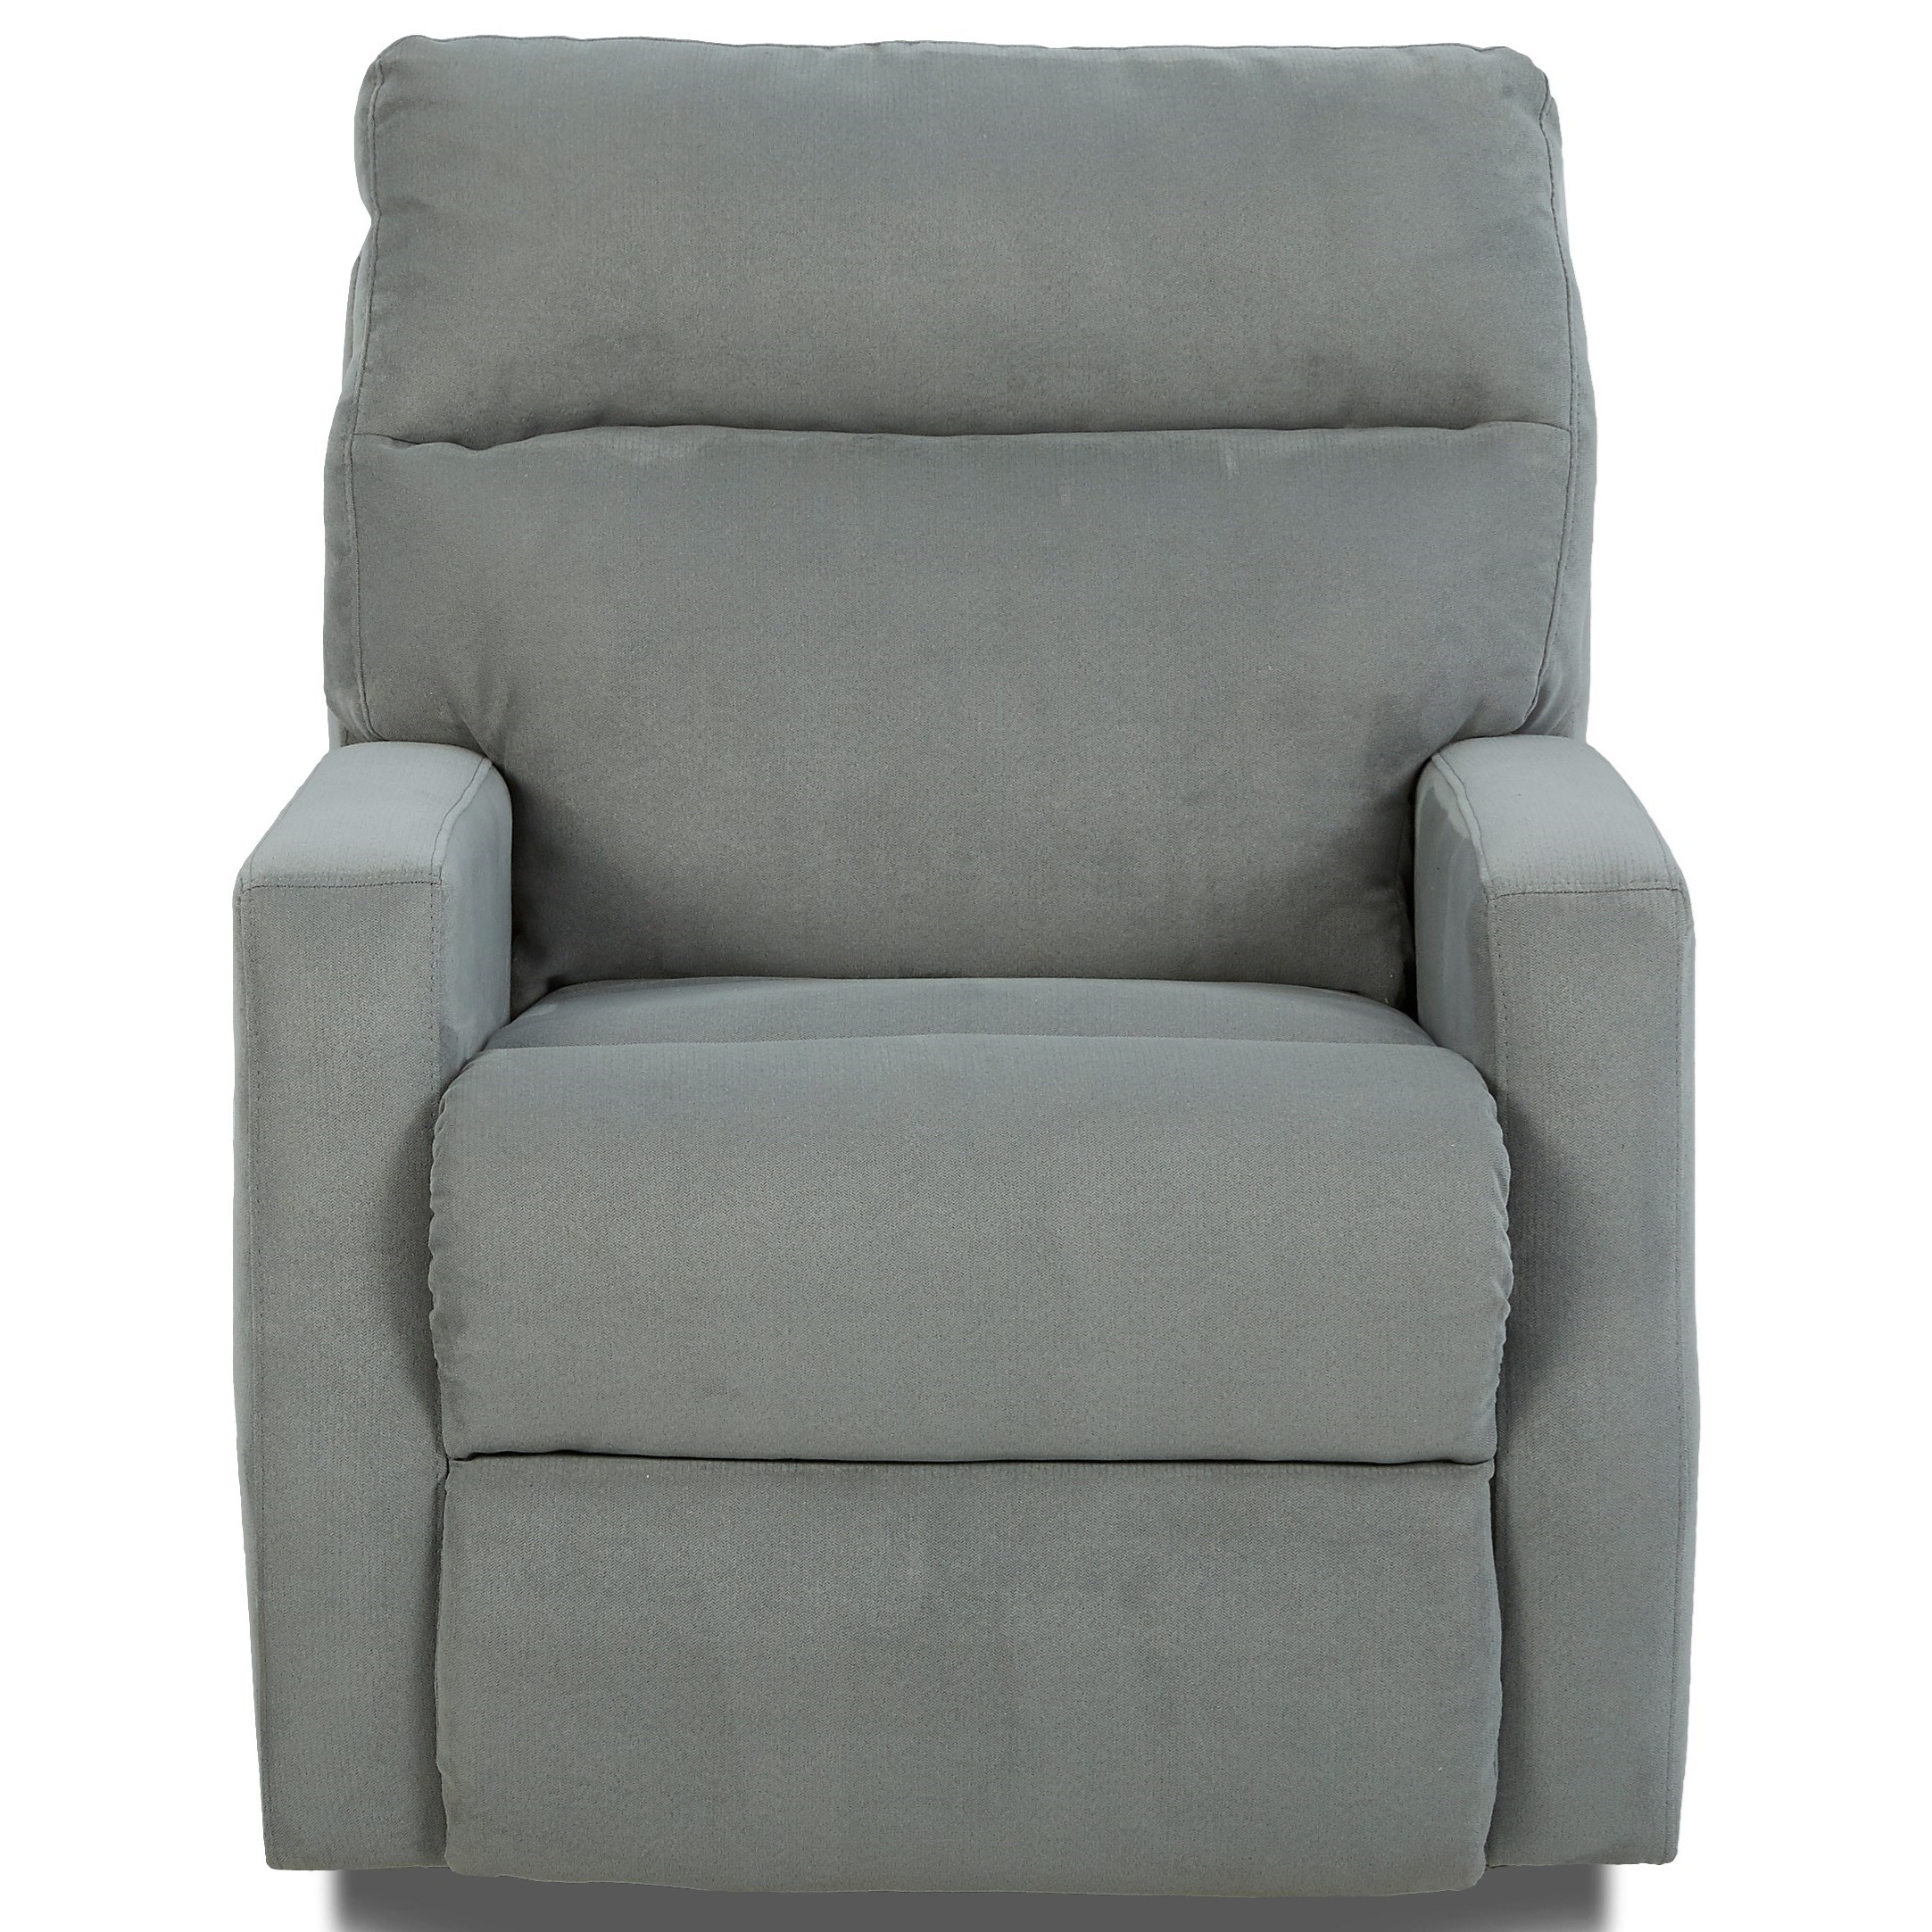 Klaussner Monticello Swivel Gliding Reclining Chair - Item Number: 41503H SGRC-GEO SURF